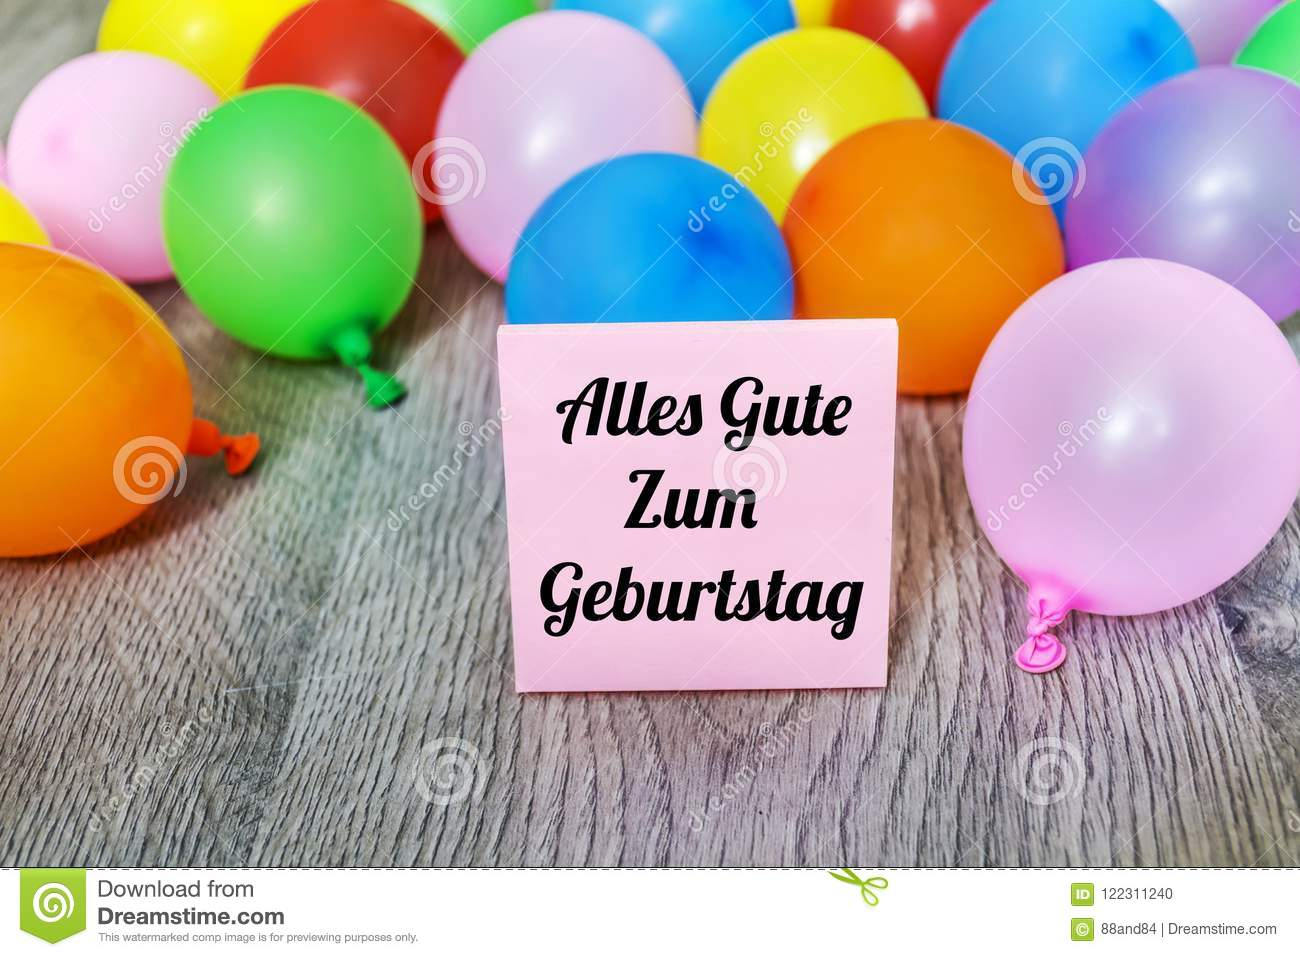 Alles Gute Zum Geburtstag Card With Balloons Stock Photo Image Of